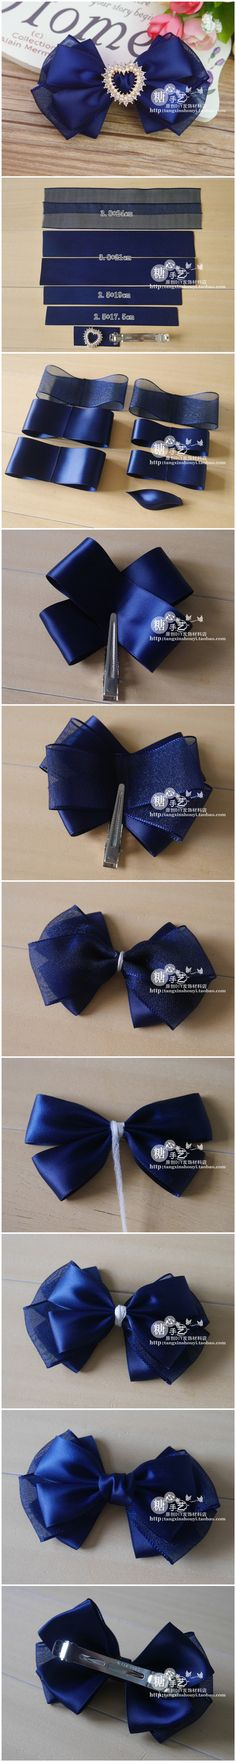 NAVY BOW Instructions